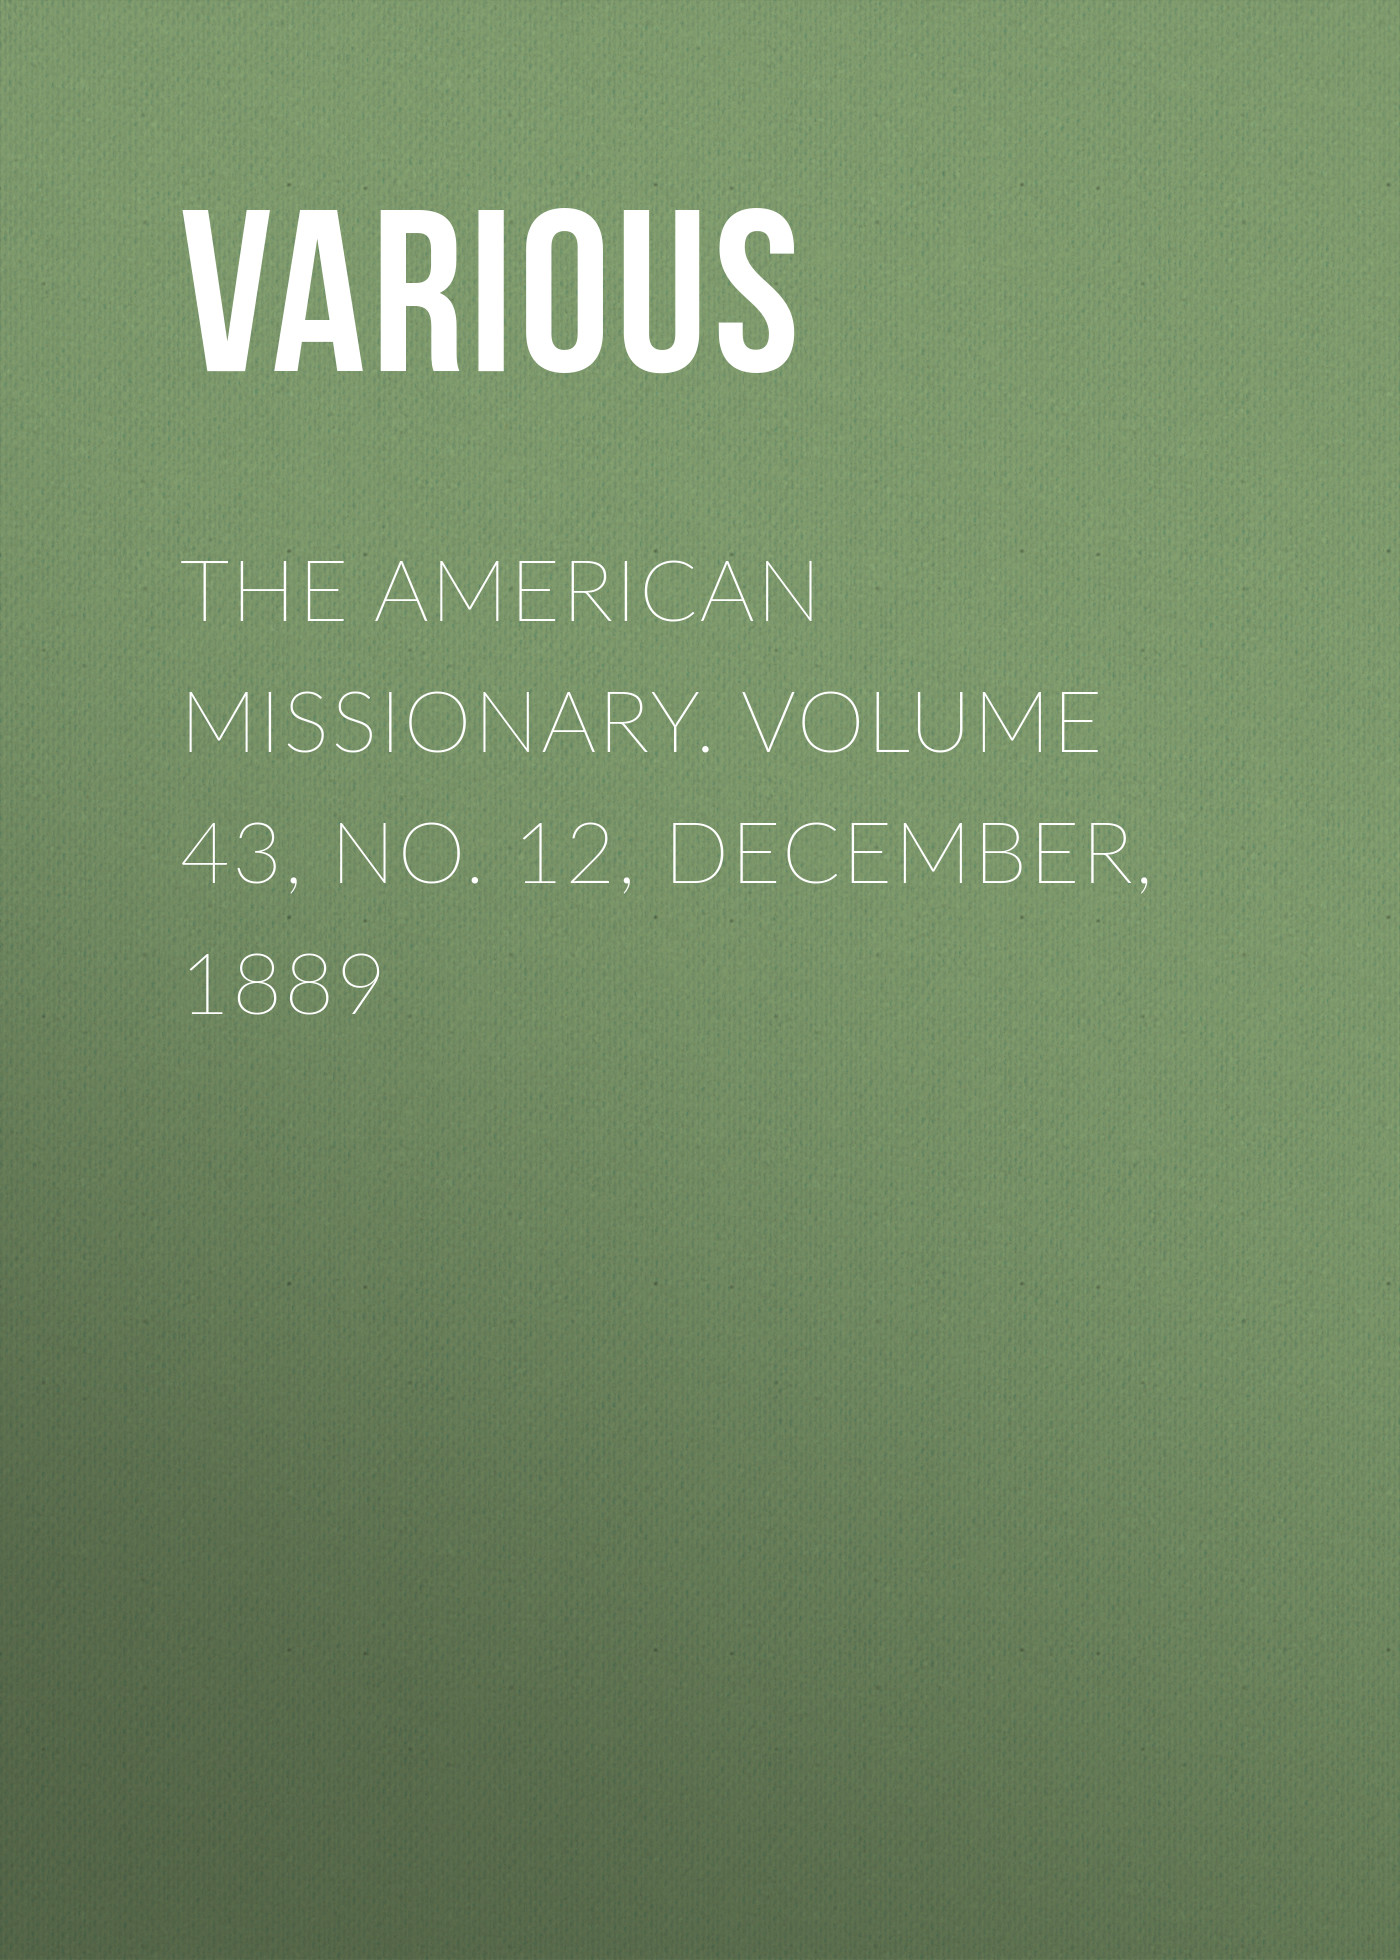 Various The American Missionary. Volume 43, No. 12, December, 1889